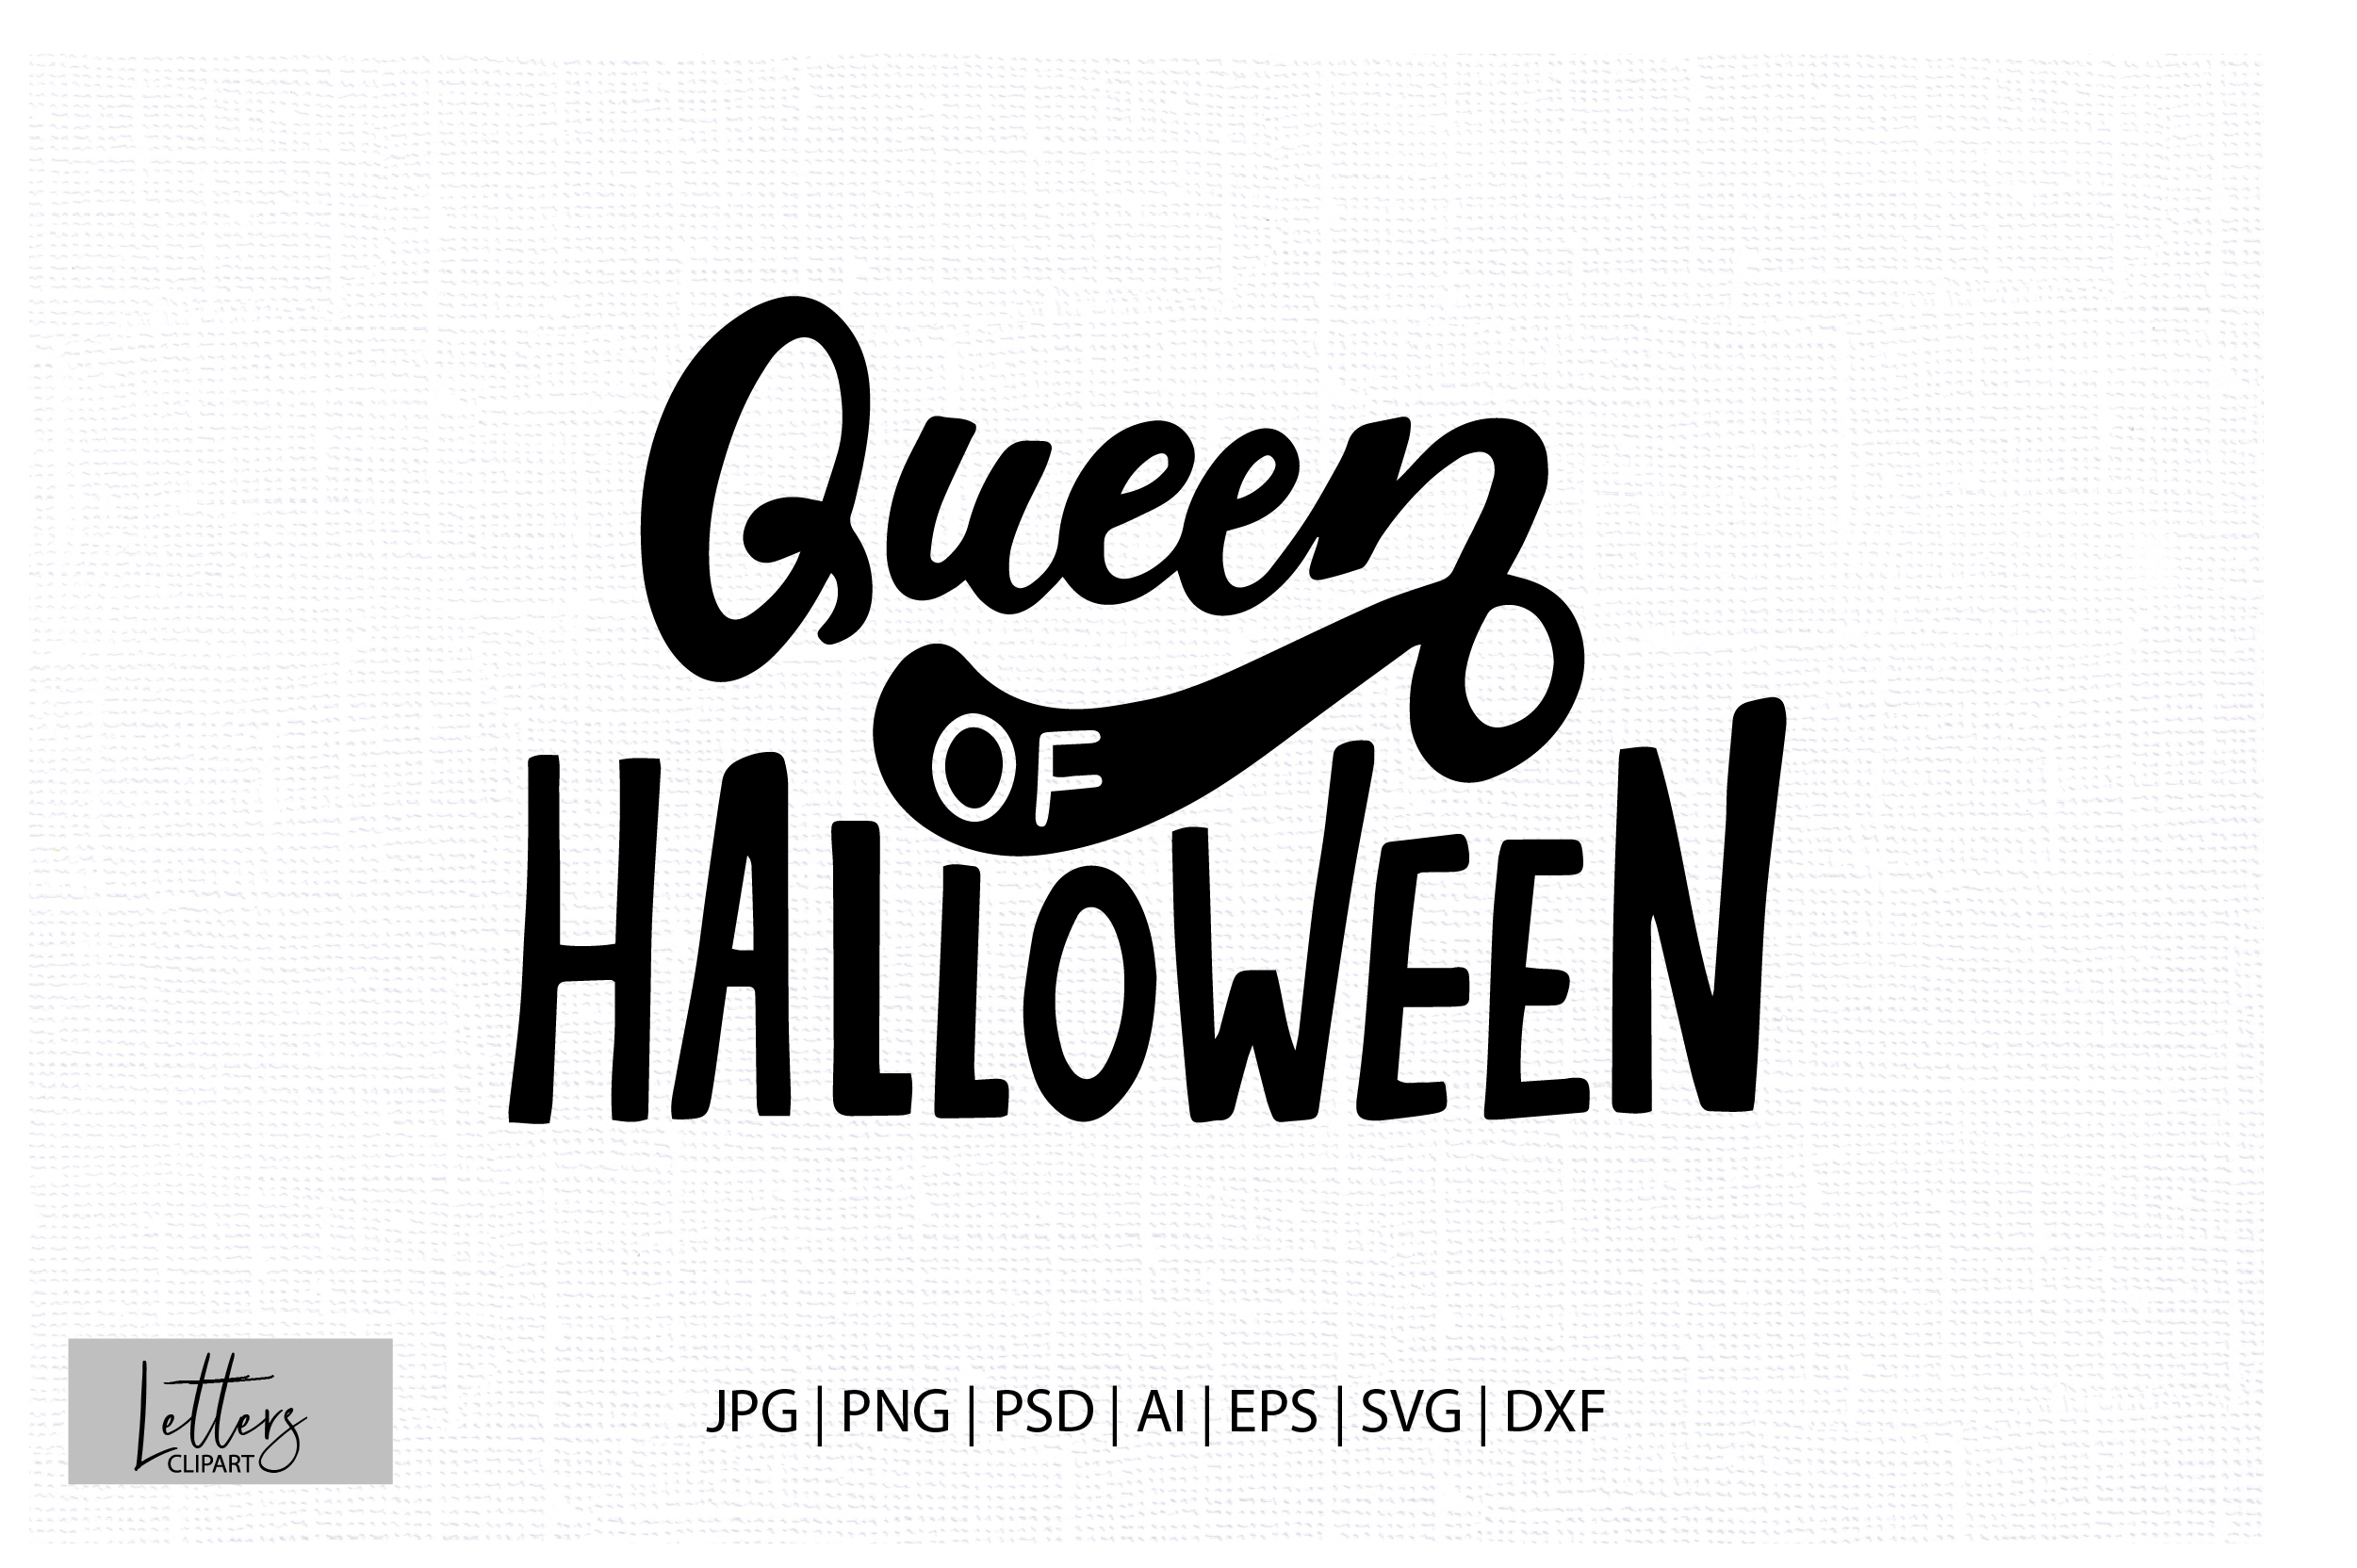 Friends Halloween Svg – 260+ SVG PNG EPS DXF in Zip File